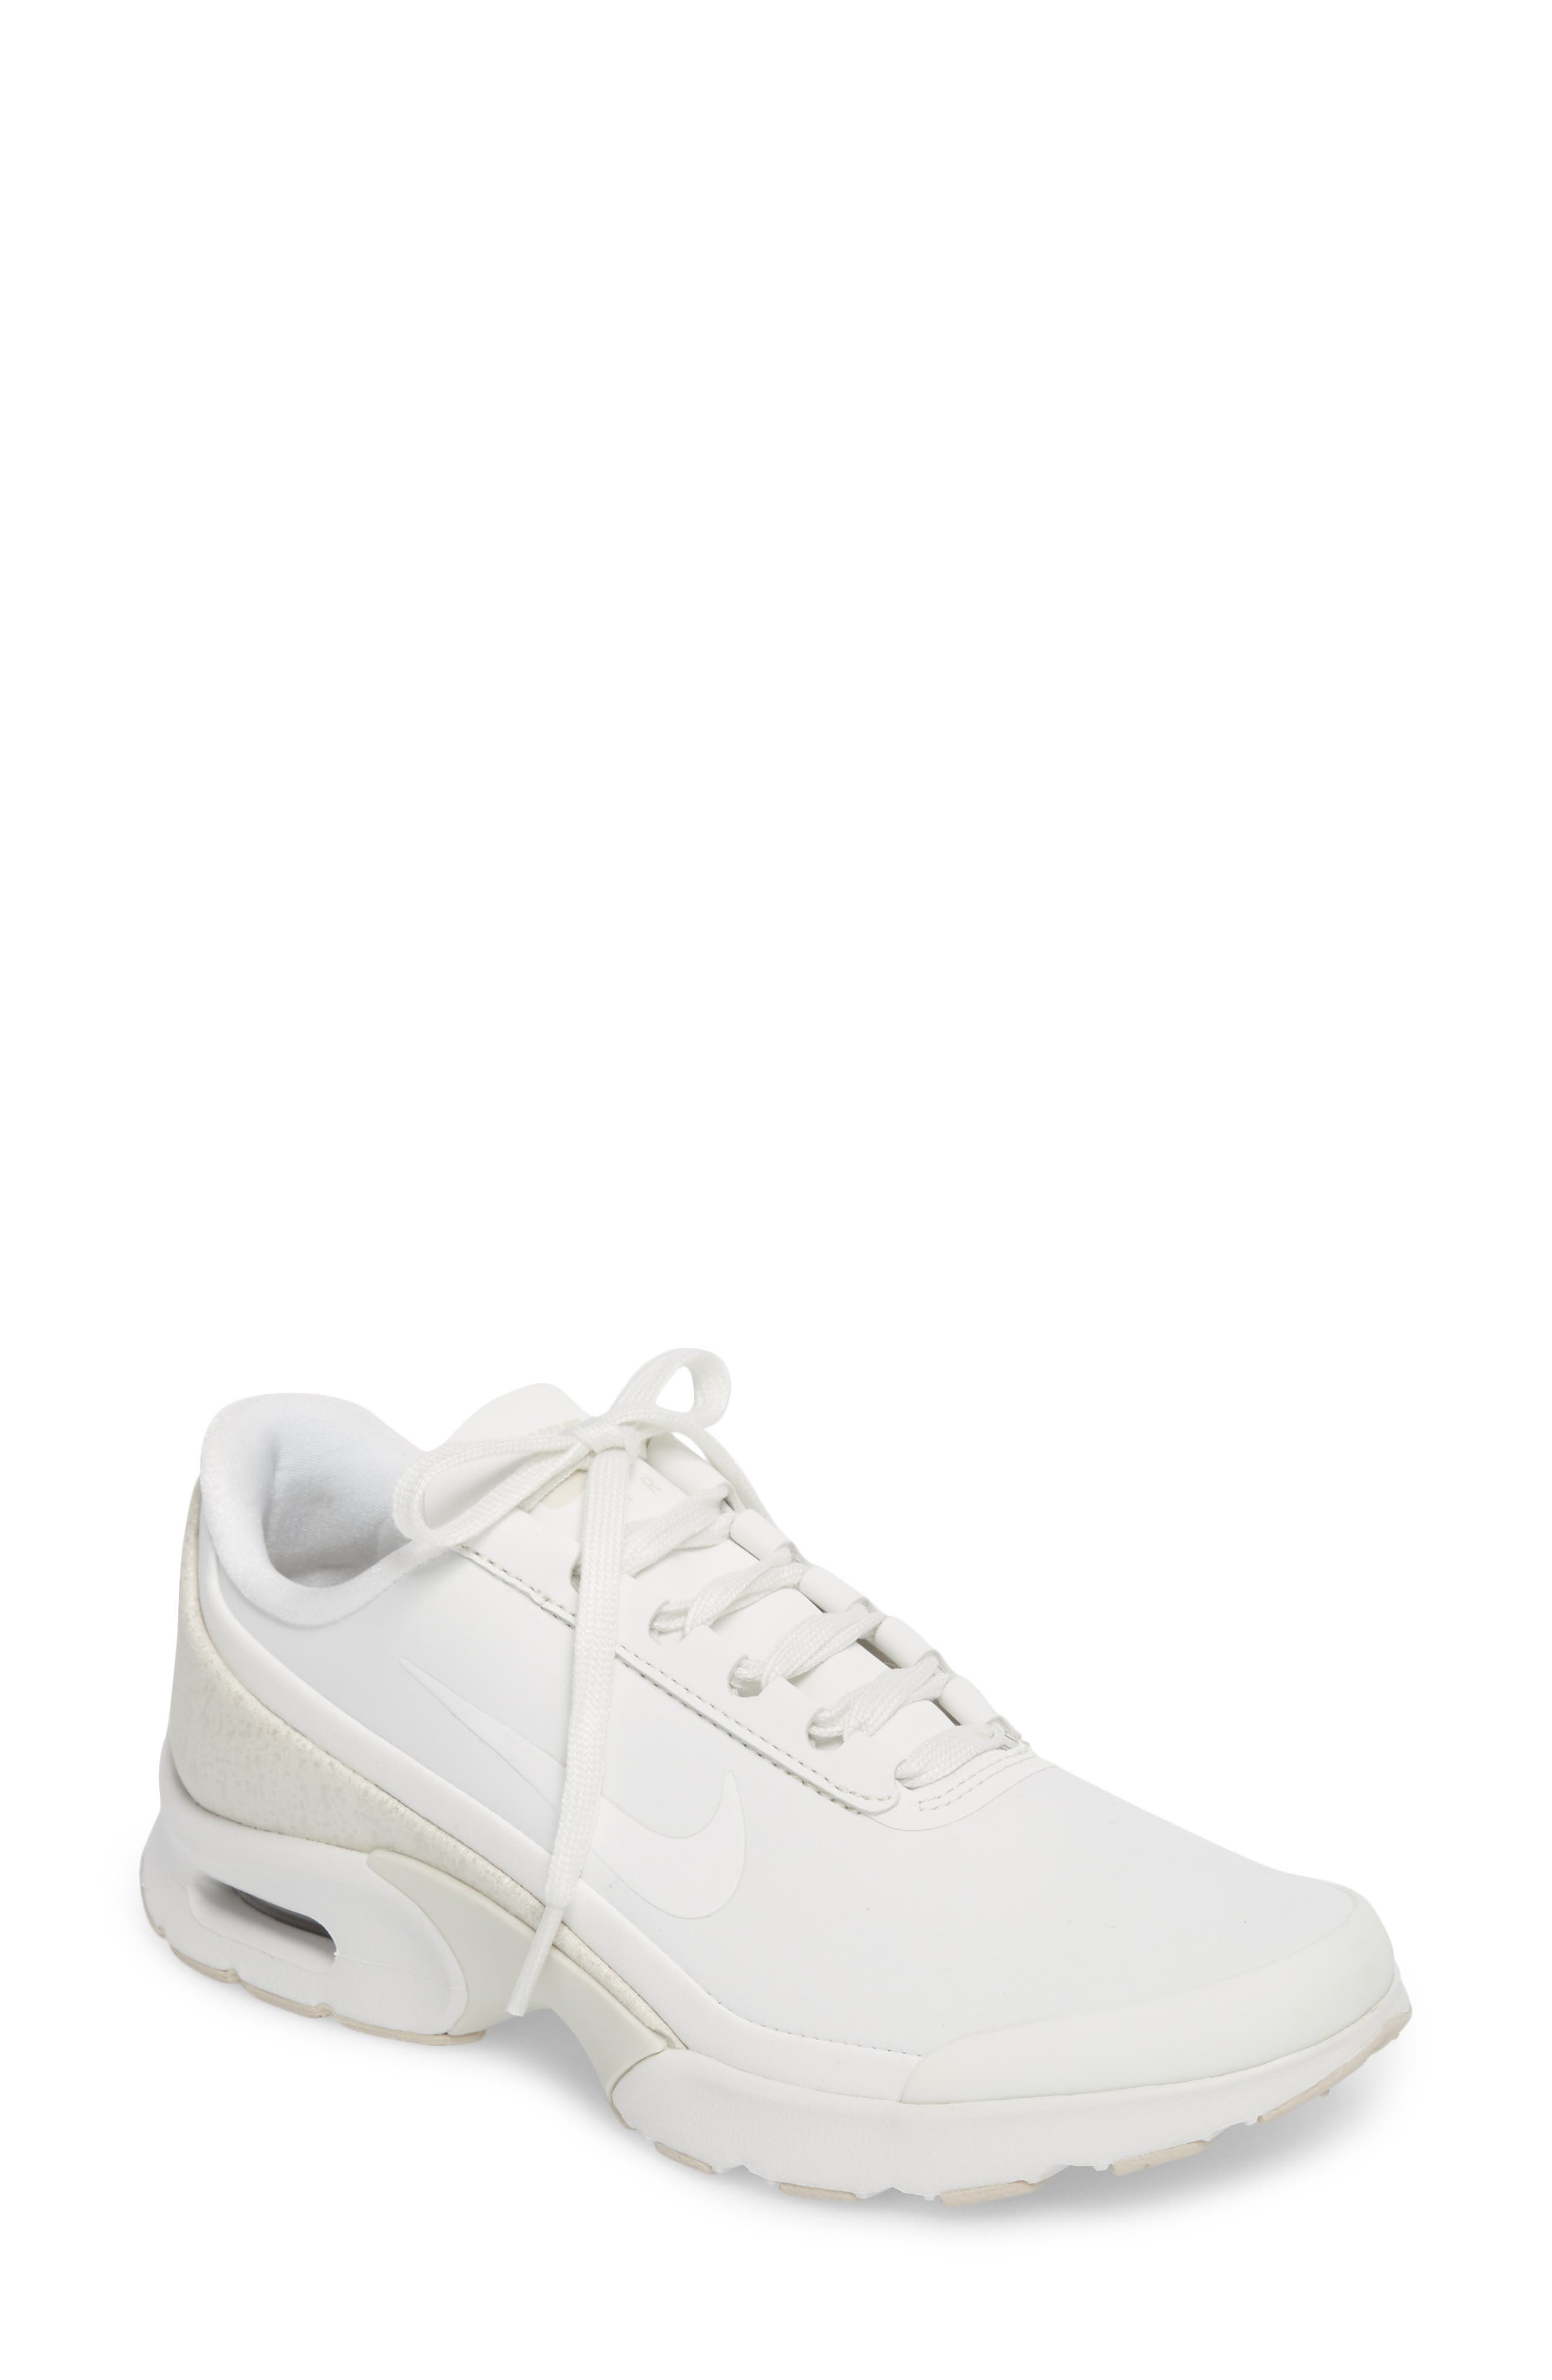 Air Max Jewell Sneaker,                             Main thumbnail 1, color,                             Summit White/ Summit White